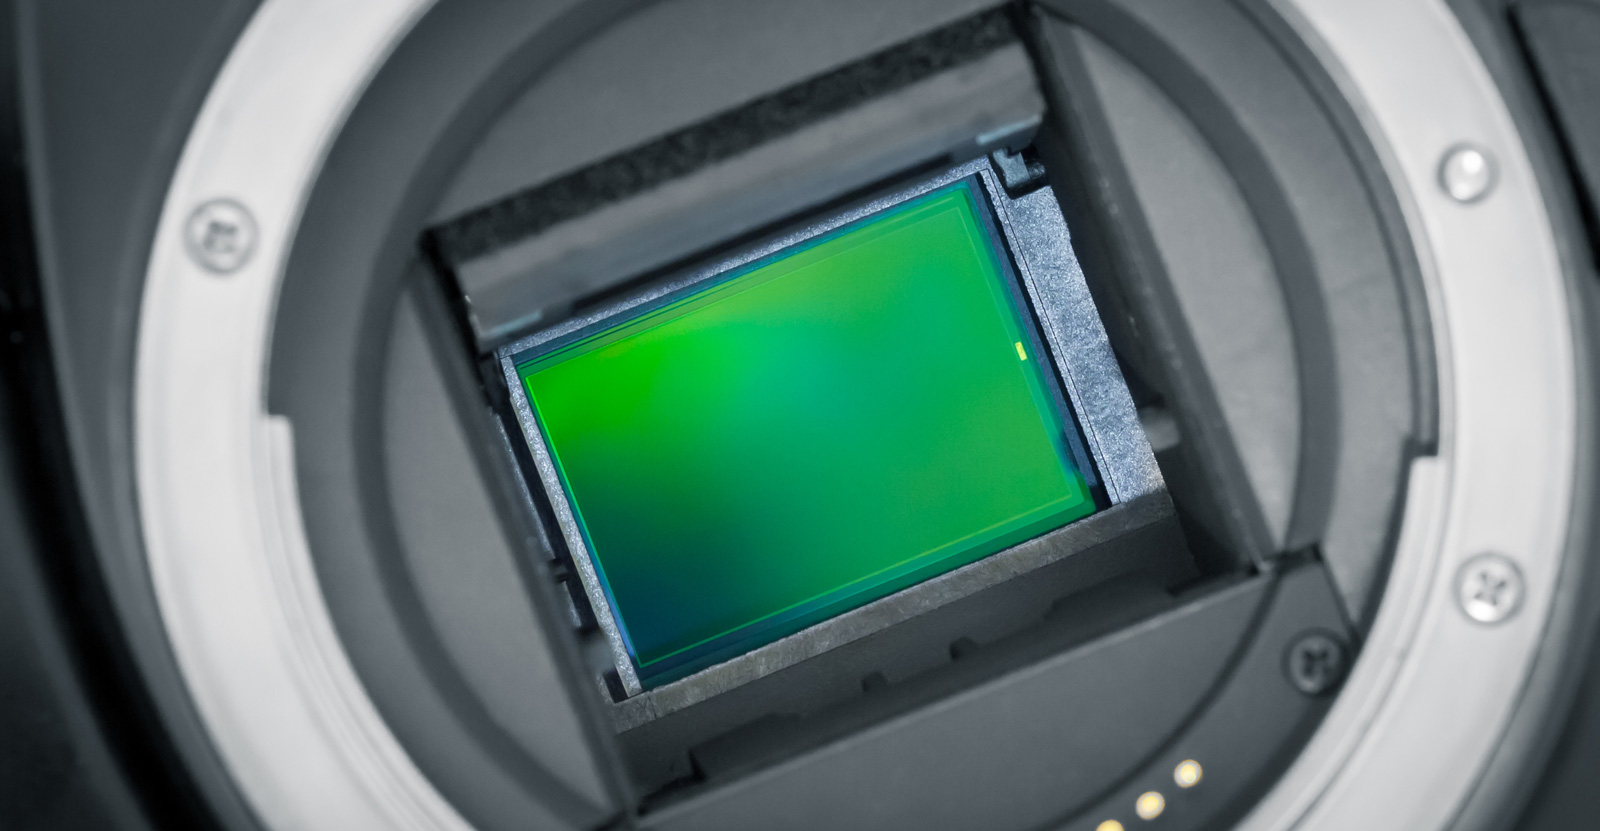 Digital-Camera-Low-Light-Image-Sensor-Breakthrough-Announced